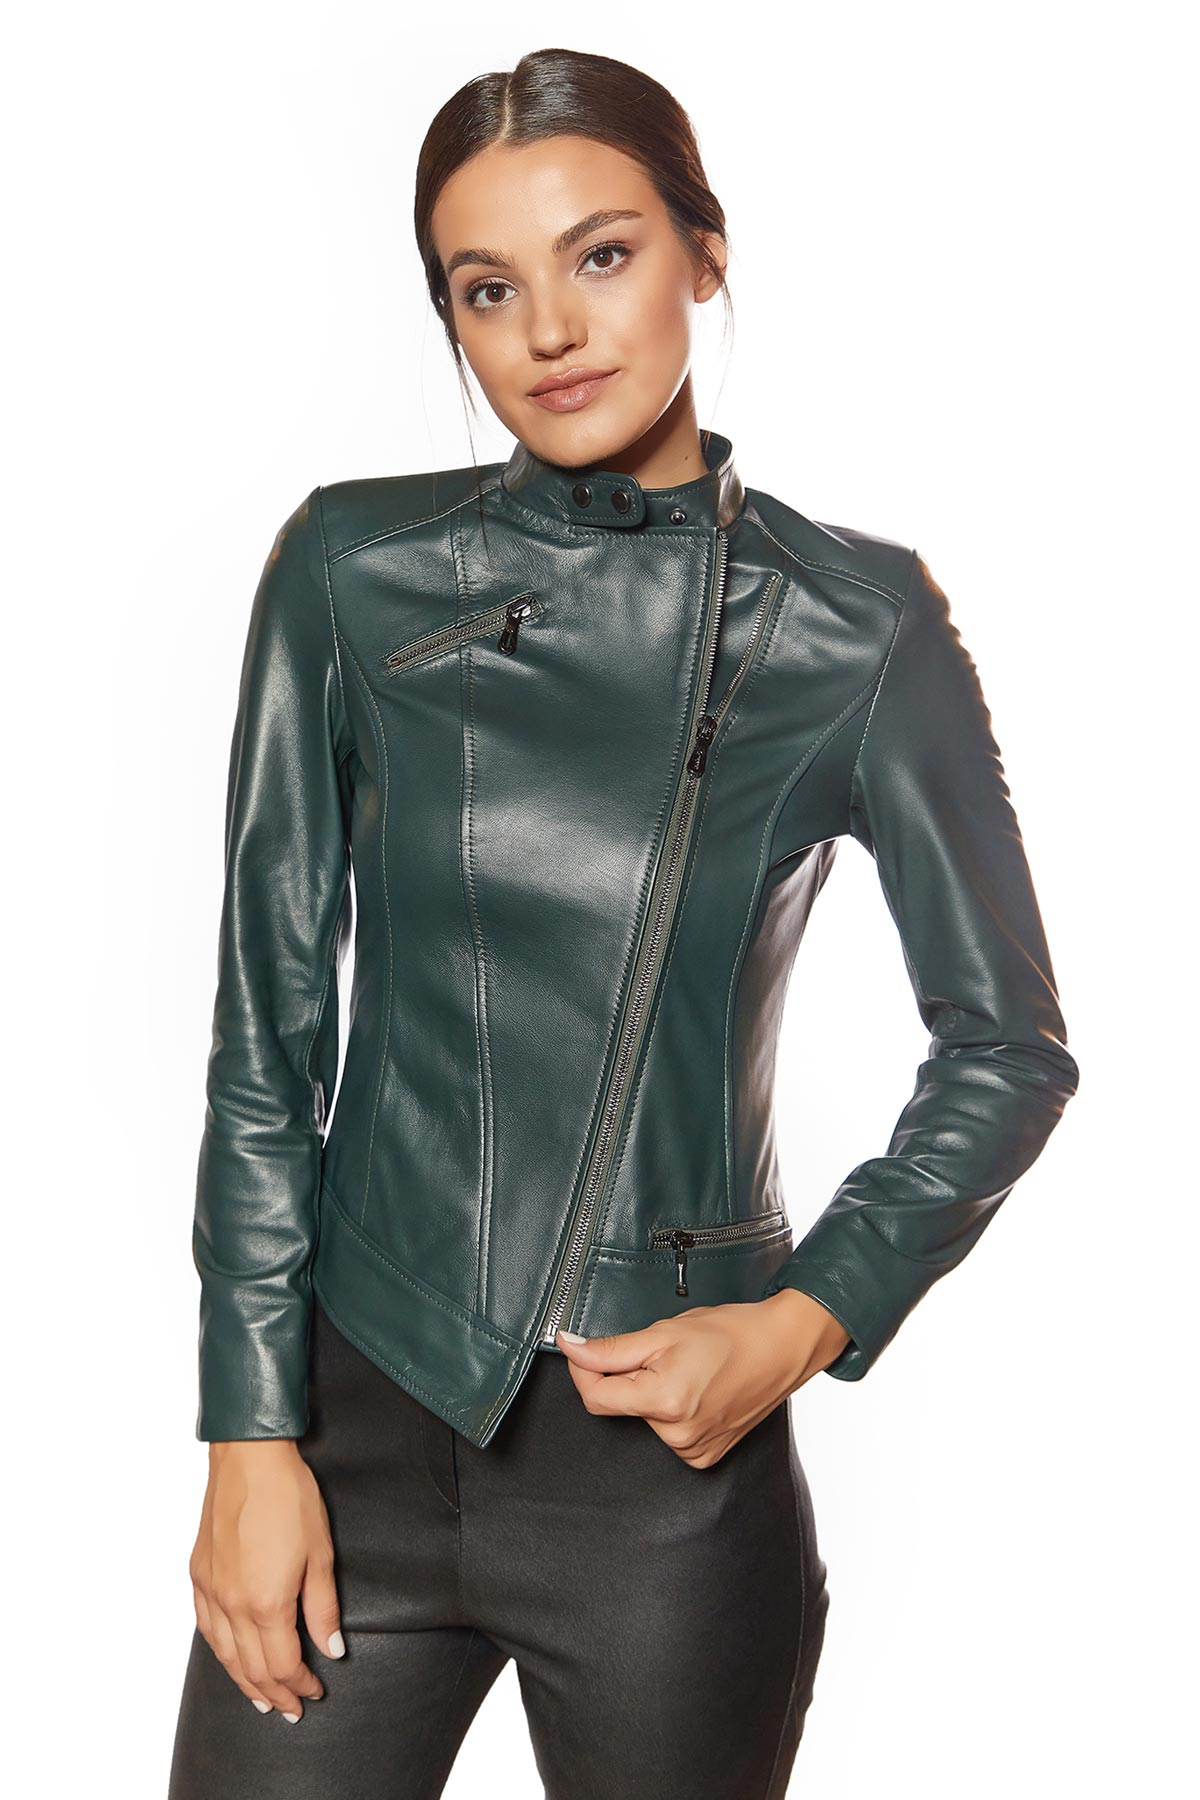 real leather jacket for sale